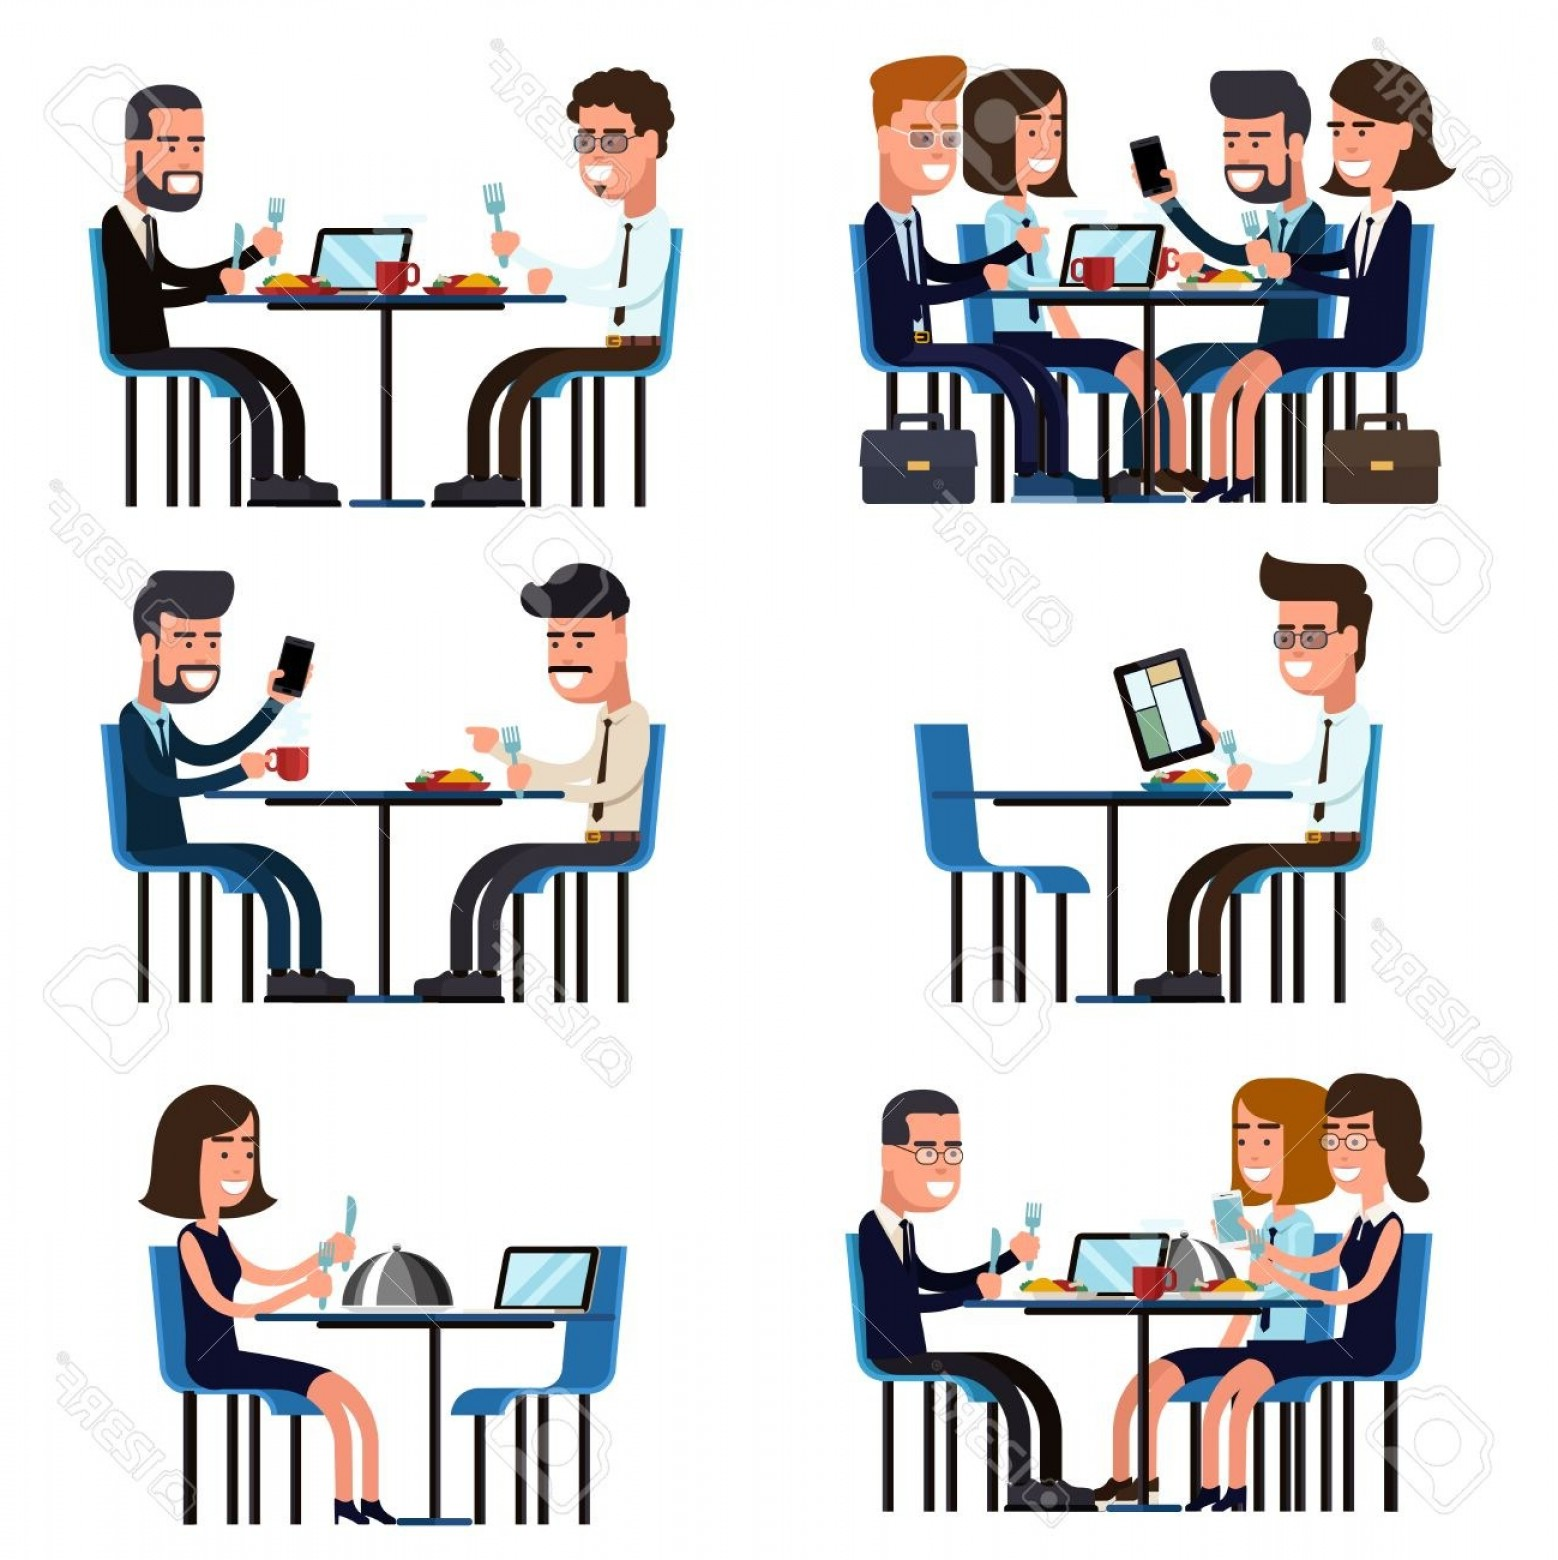 Business Lunch Clip Art Vector: Photostock Vector Business Lunch Break Food And Meeting People Colleague Sitting Vector Illustration